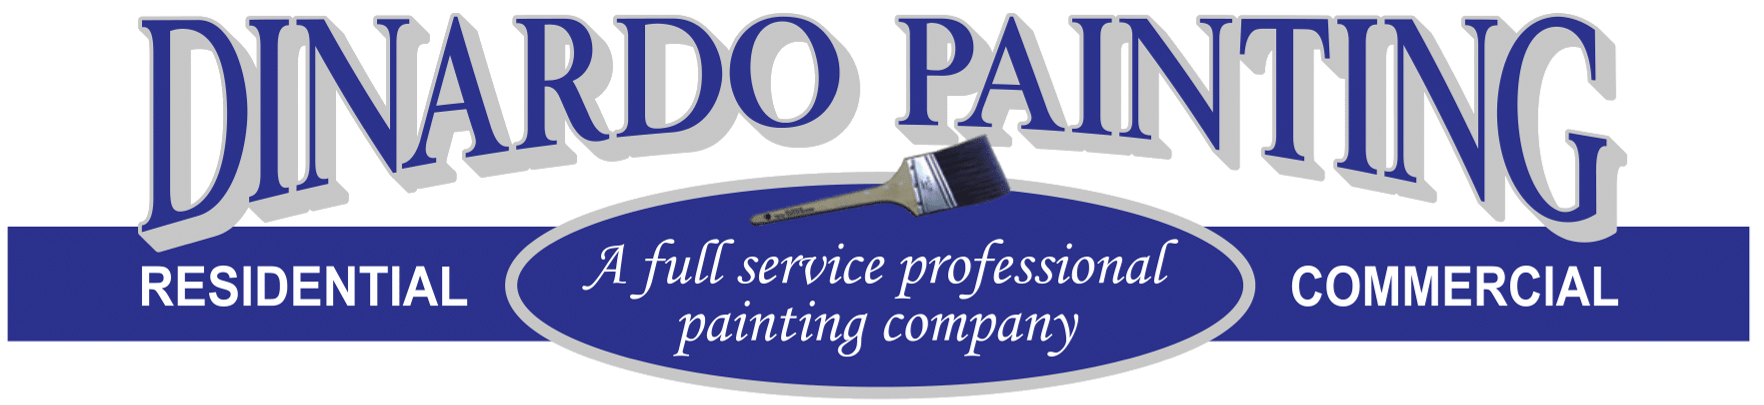 Painting Contractor Interiors & Exteriors | House Painter | New London, CT